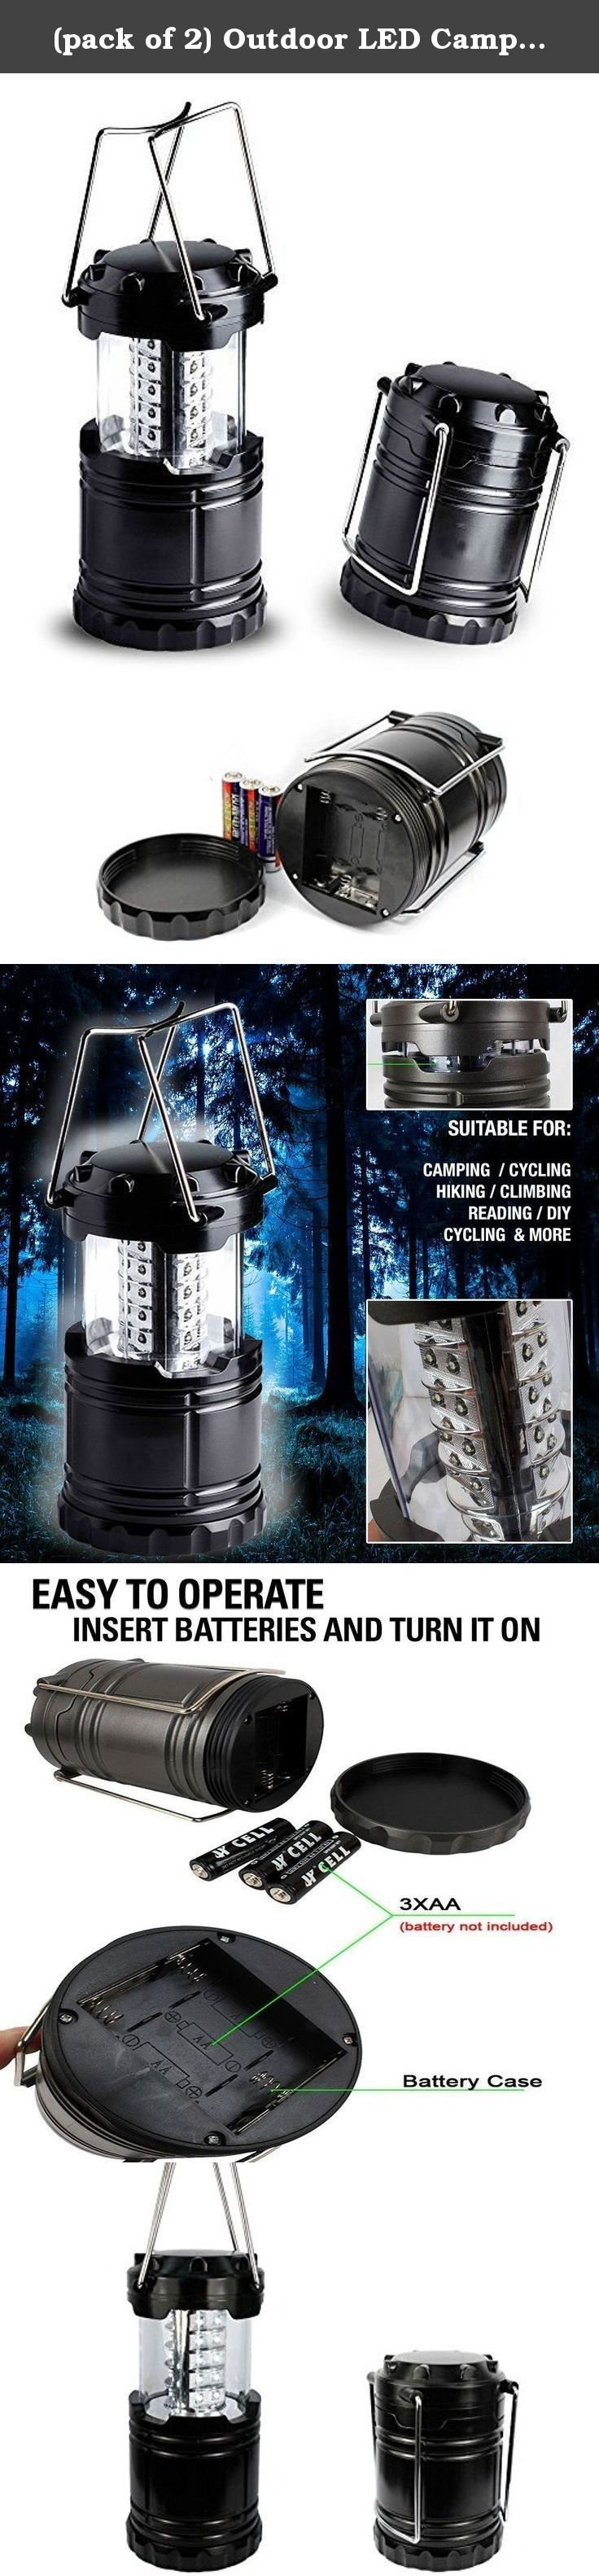 (pack of 2) Outdoor LED Camping Lantern Flashlights Set , Kenor Portable LED Camping Light Emergency Light 30 LEDs, Battery Powered, Home Garden Camping Lanterns for Hiking, RV,Emergencies, Hurricanes. USA SELLER FAST SHIPPING SATISFACTION GUARANTEED.